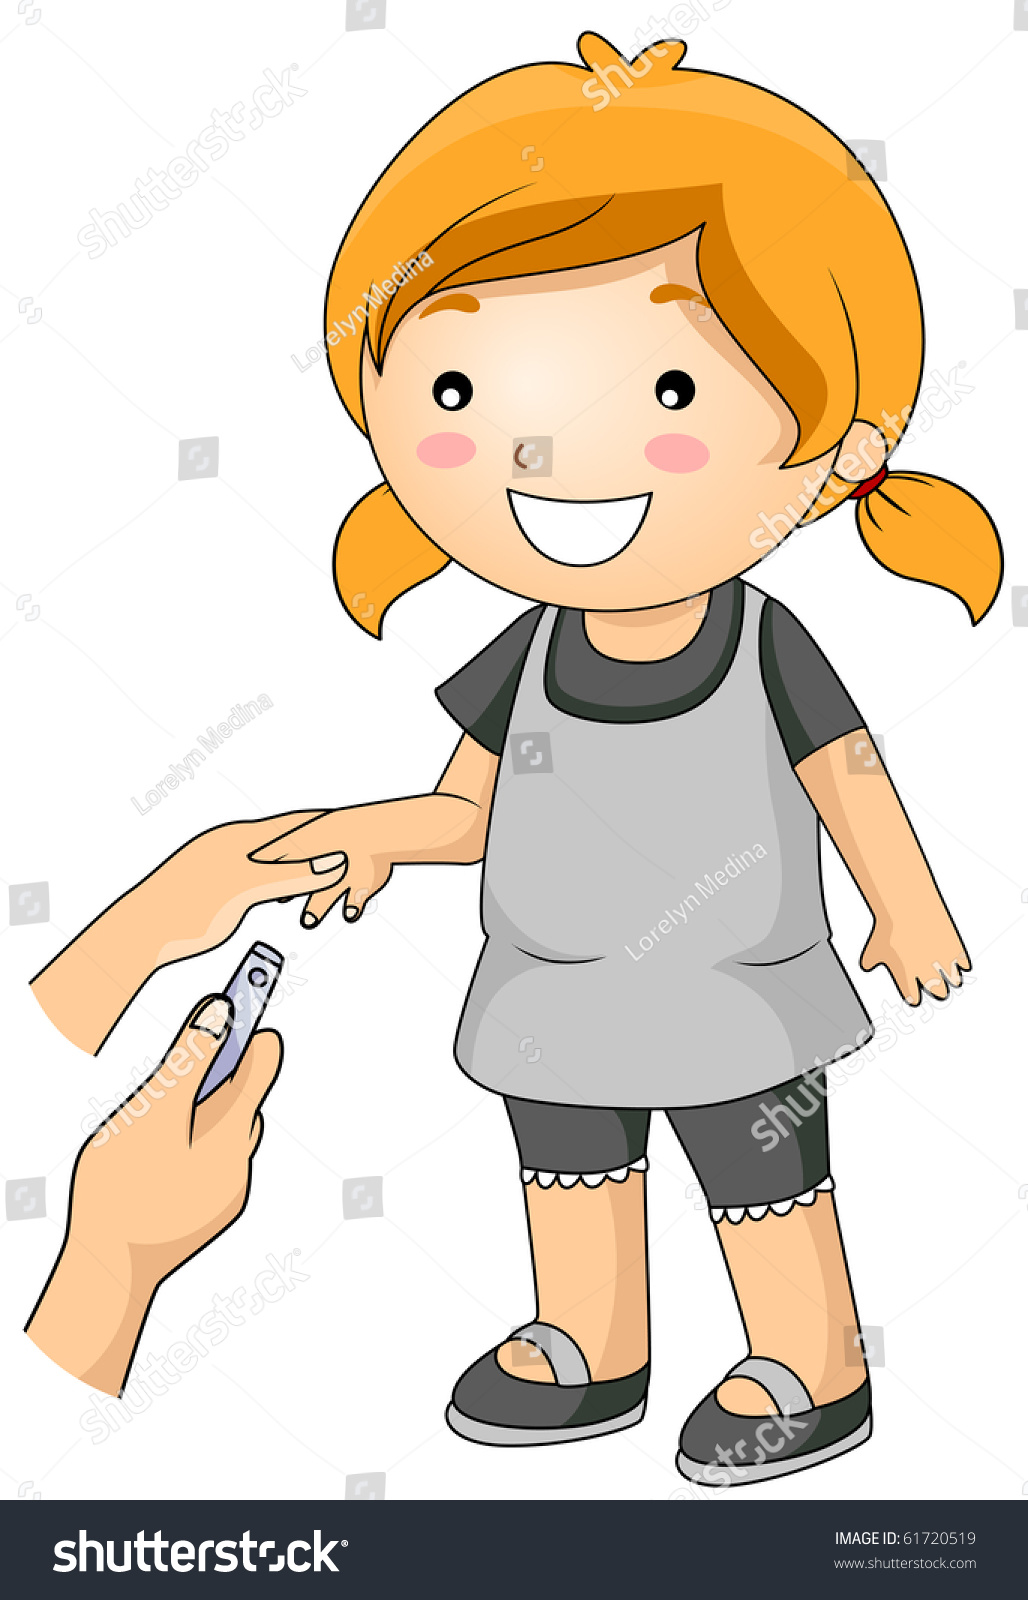 A Young Girl Getting Her Nails Cut - Vector - Cutting Nails PNG